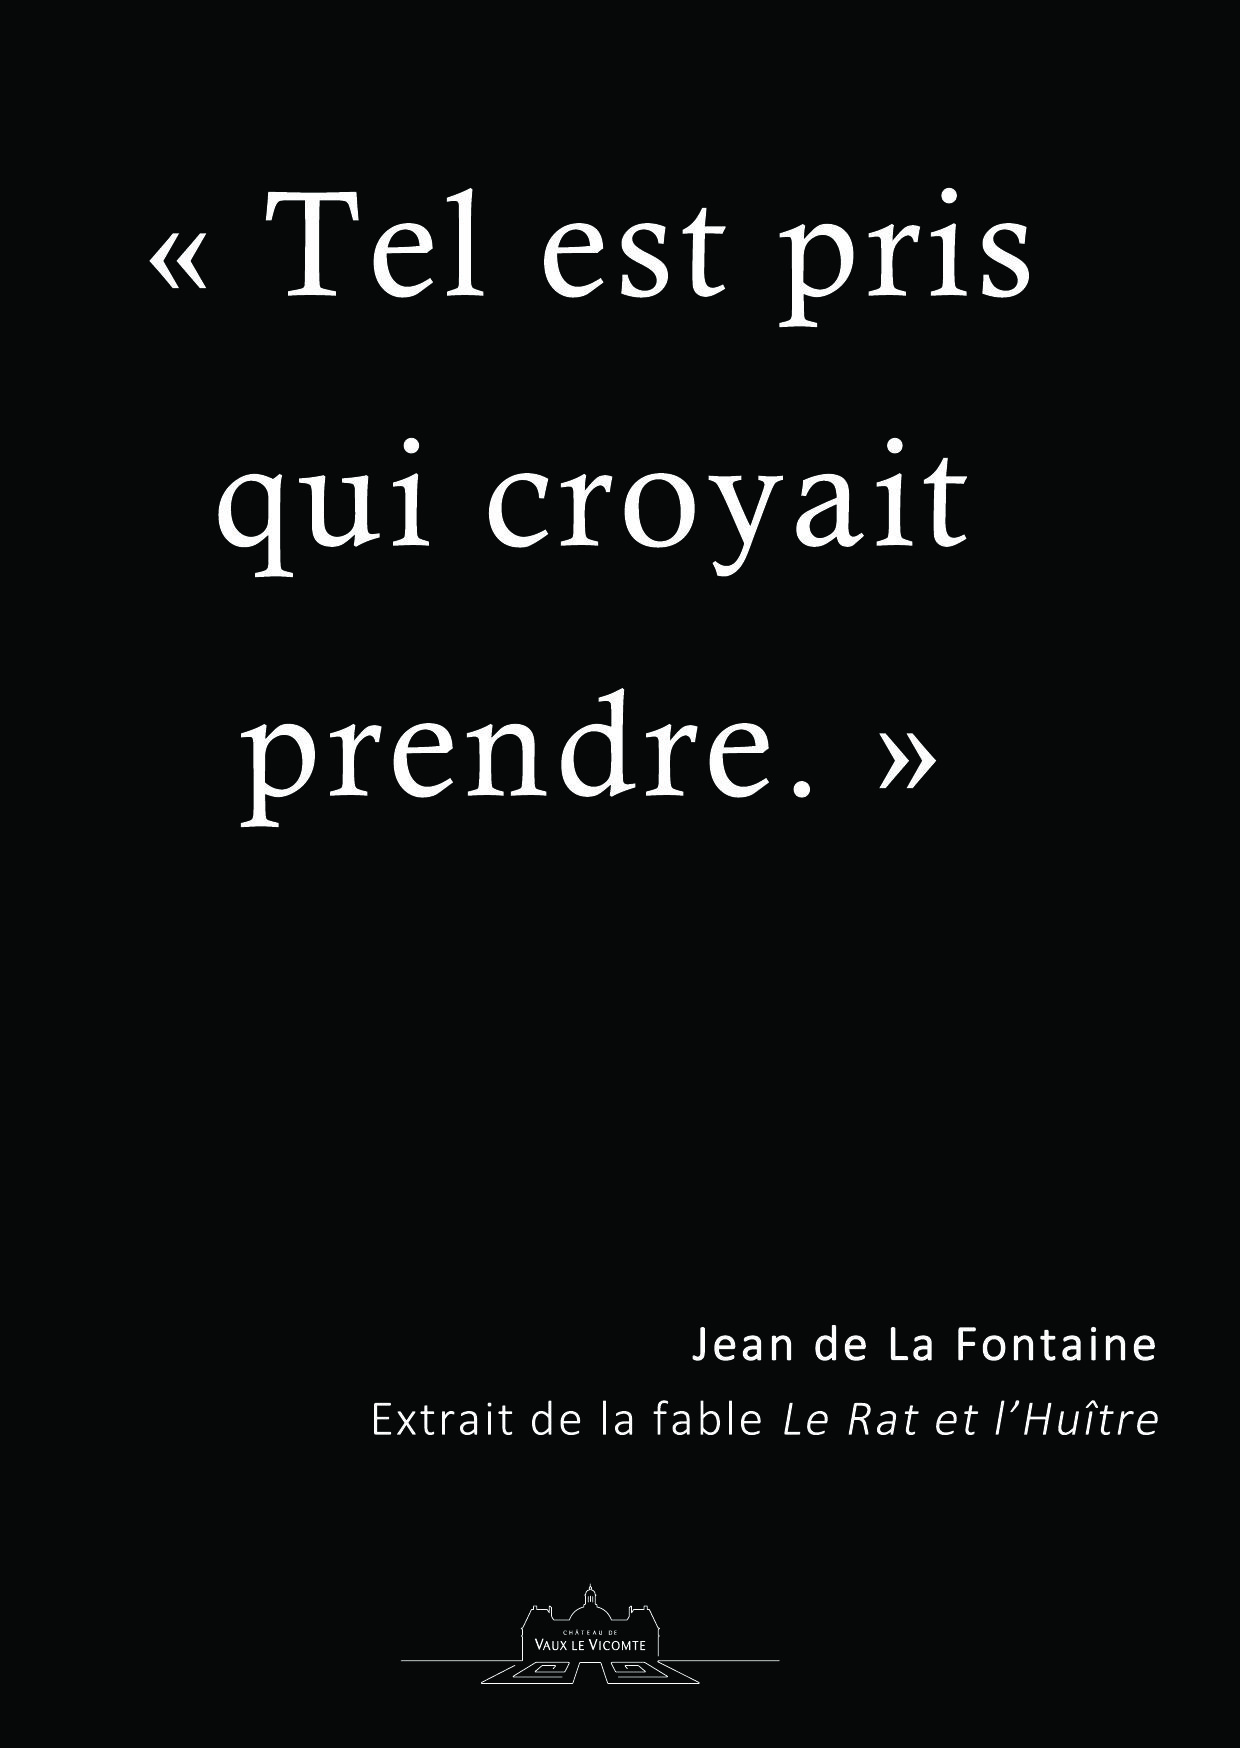 Pin By Bab Gourel On Citations Francaises Quote Citation Quotes